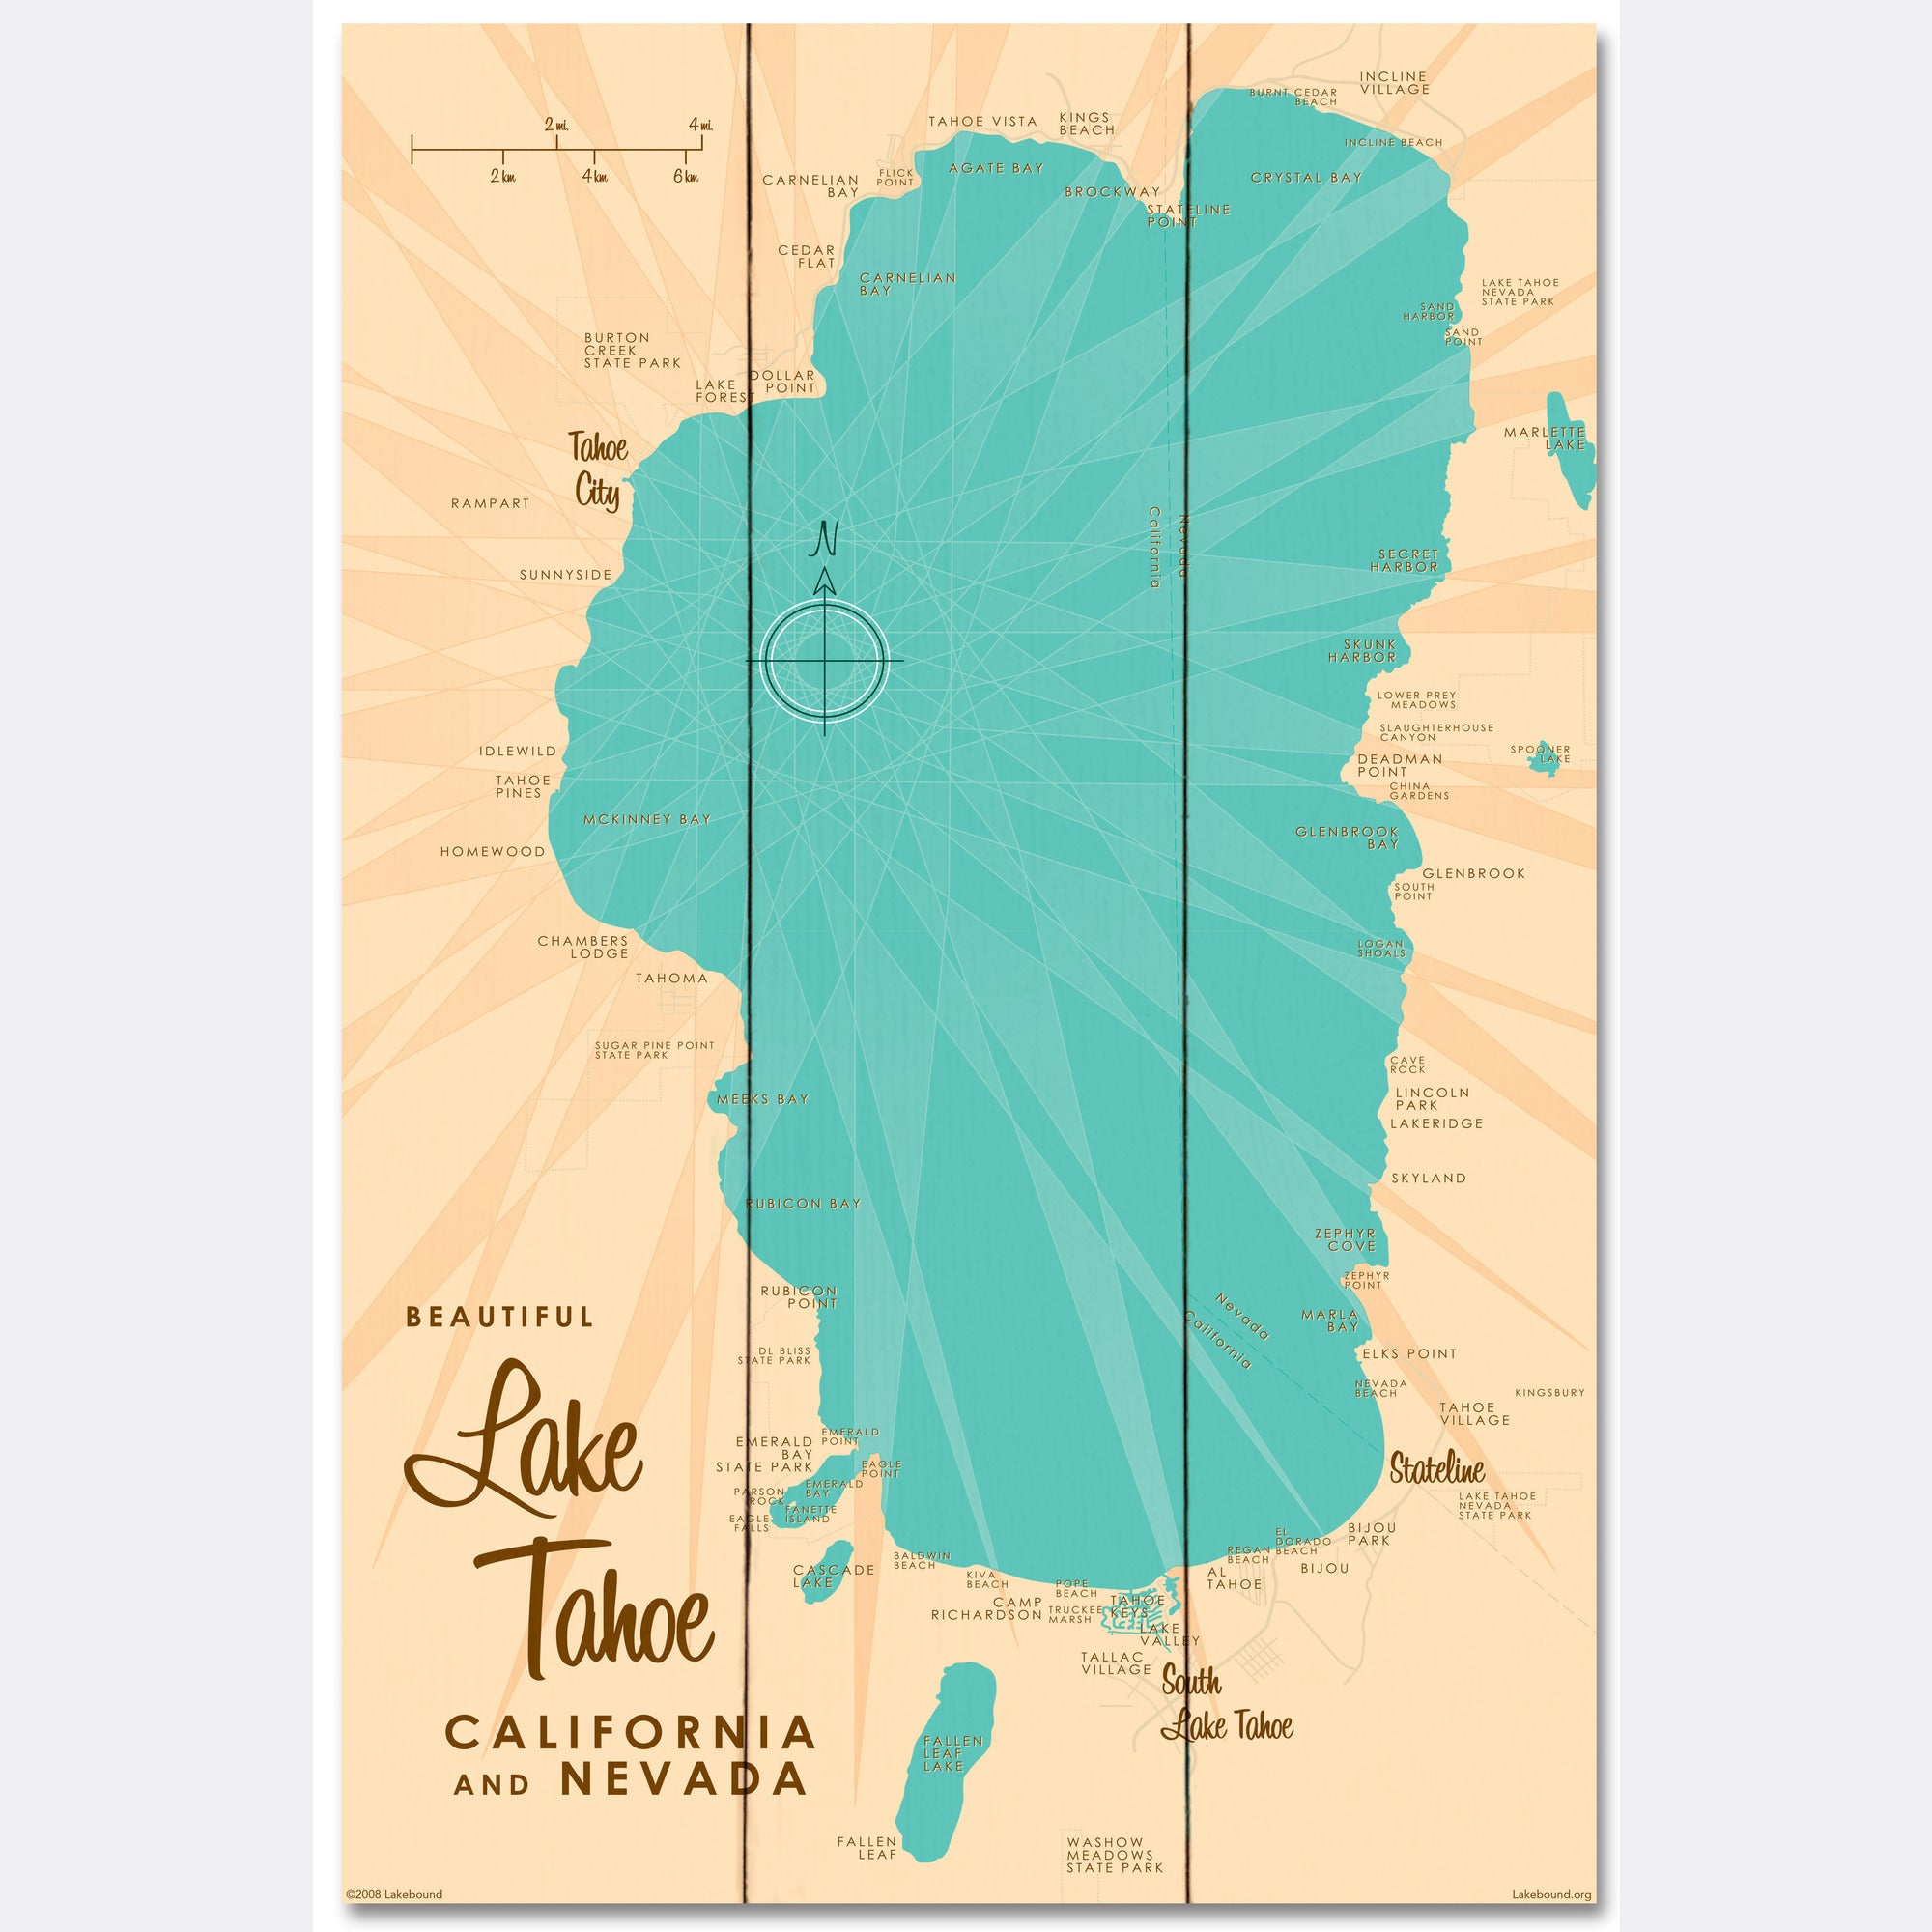 Lake Tahoe CA Nevada, Wood Sign Map Art on squaw valley map, lake berryessa map, lake winnebago map, lake toho map, virginia city map, salt lake map, grand canyon map, truckee river map, lake taho, lopez lake map, united states map, rocky mountains map, california map, carson city map, san bernardino mountains map, pyramid lake map, lakes in arizona map, los angeles map, mammoth lakes map, nevada map,